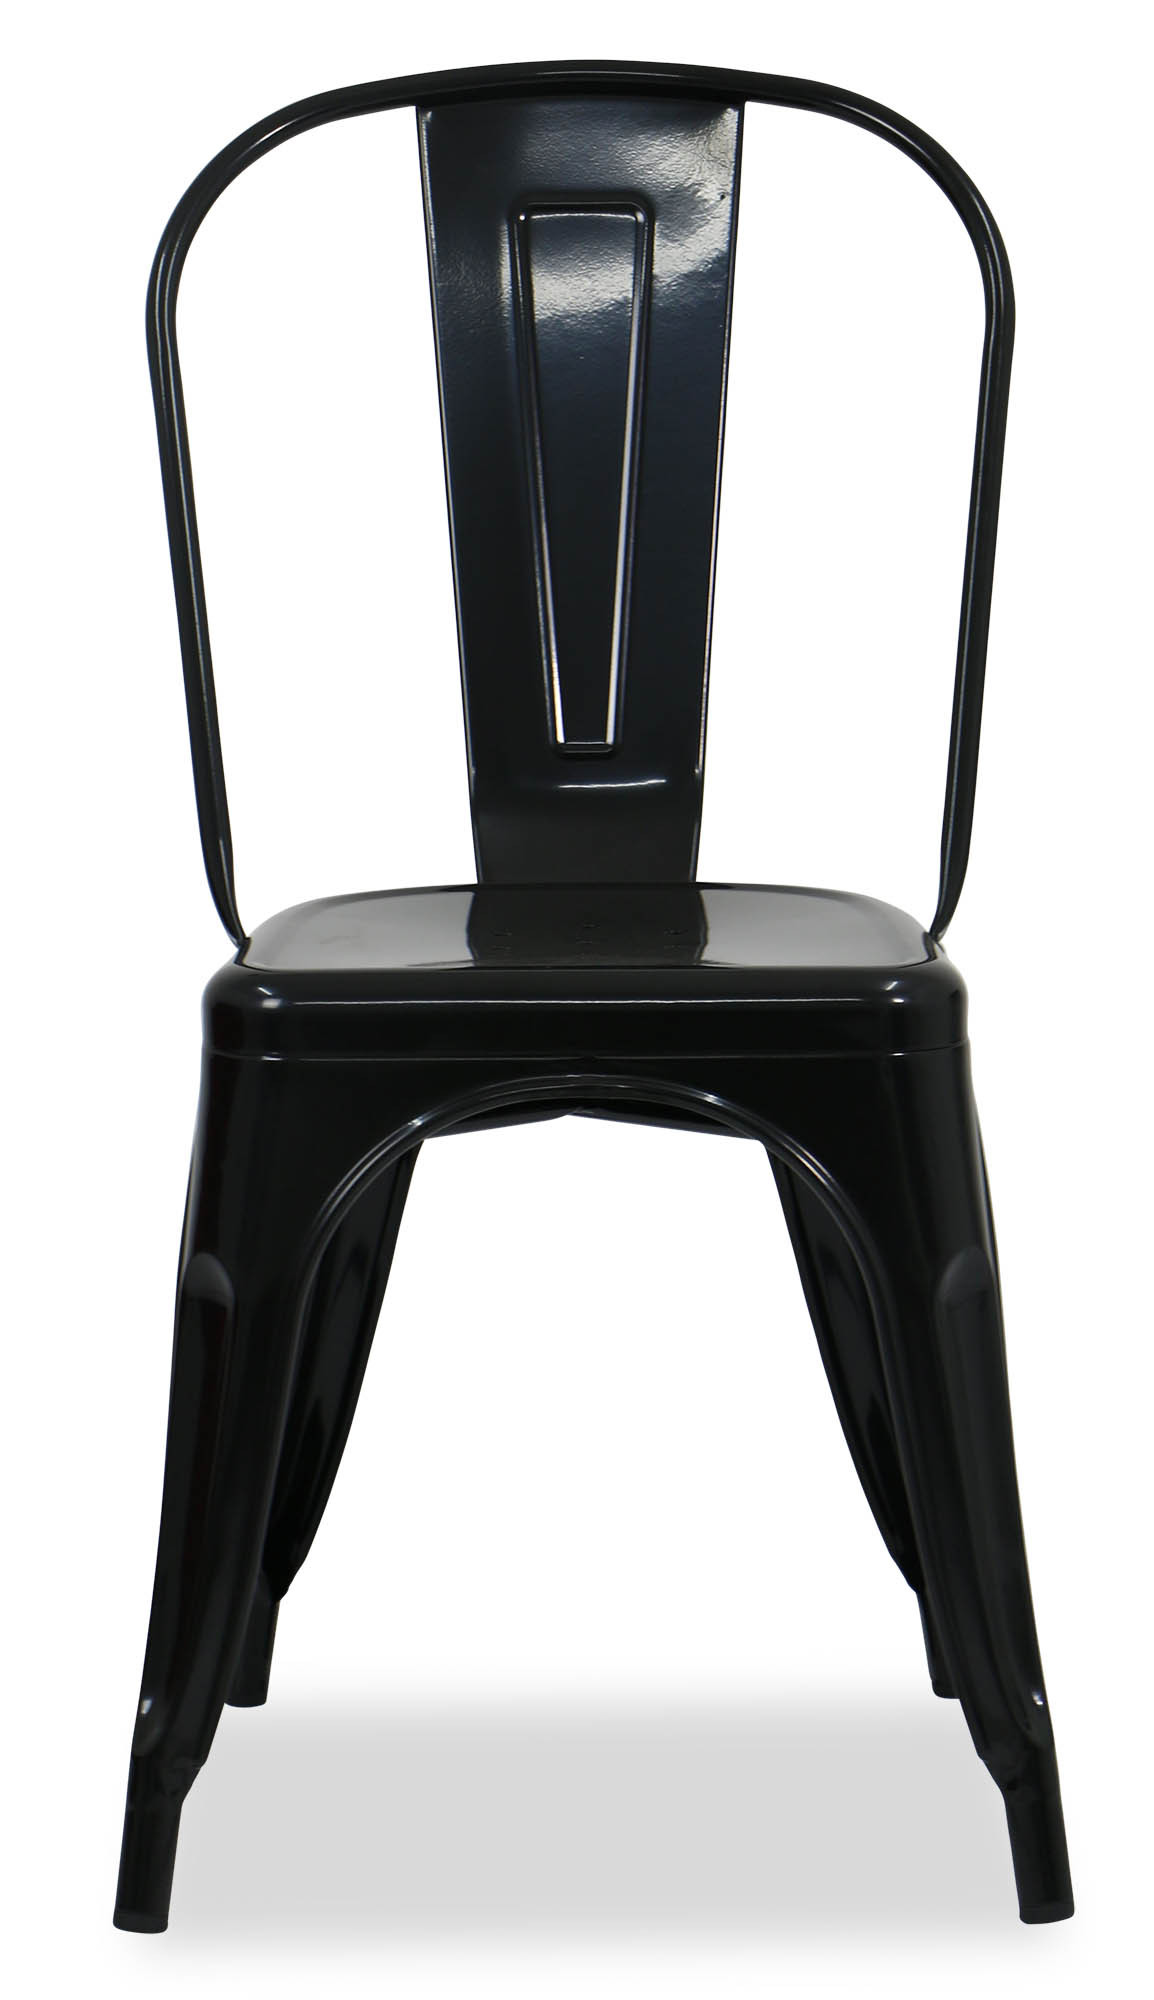 Retro metal chair black furniture home décor fortytwo